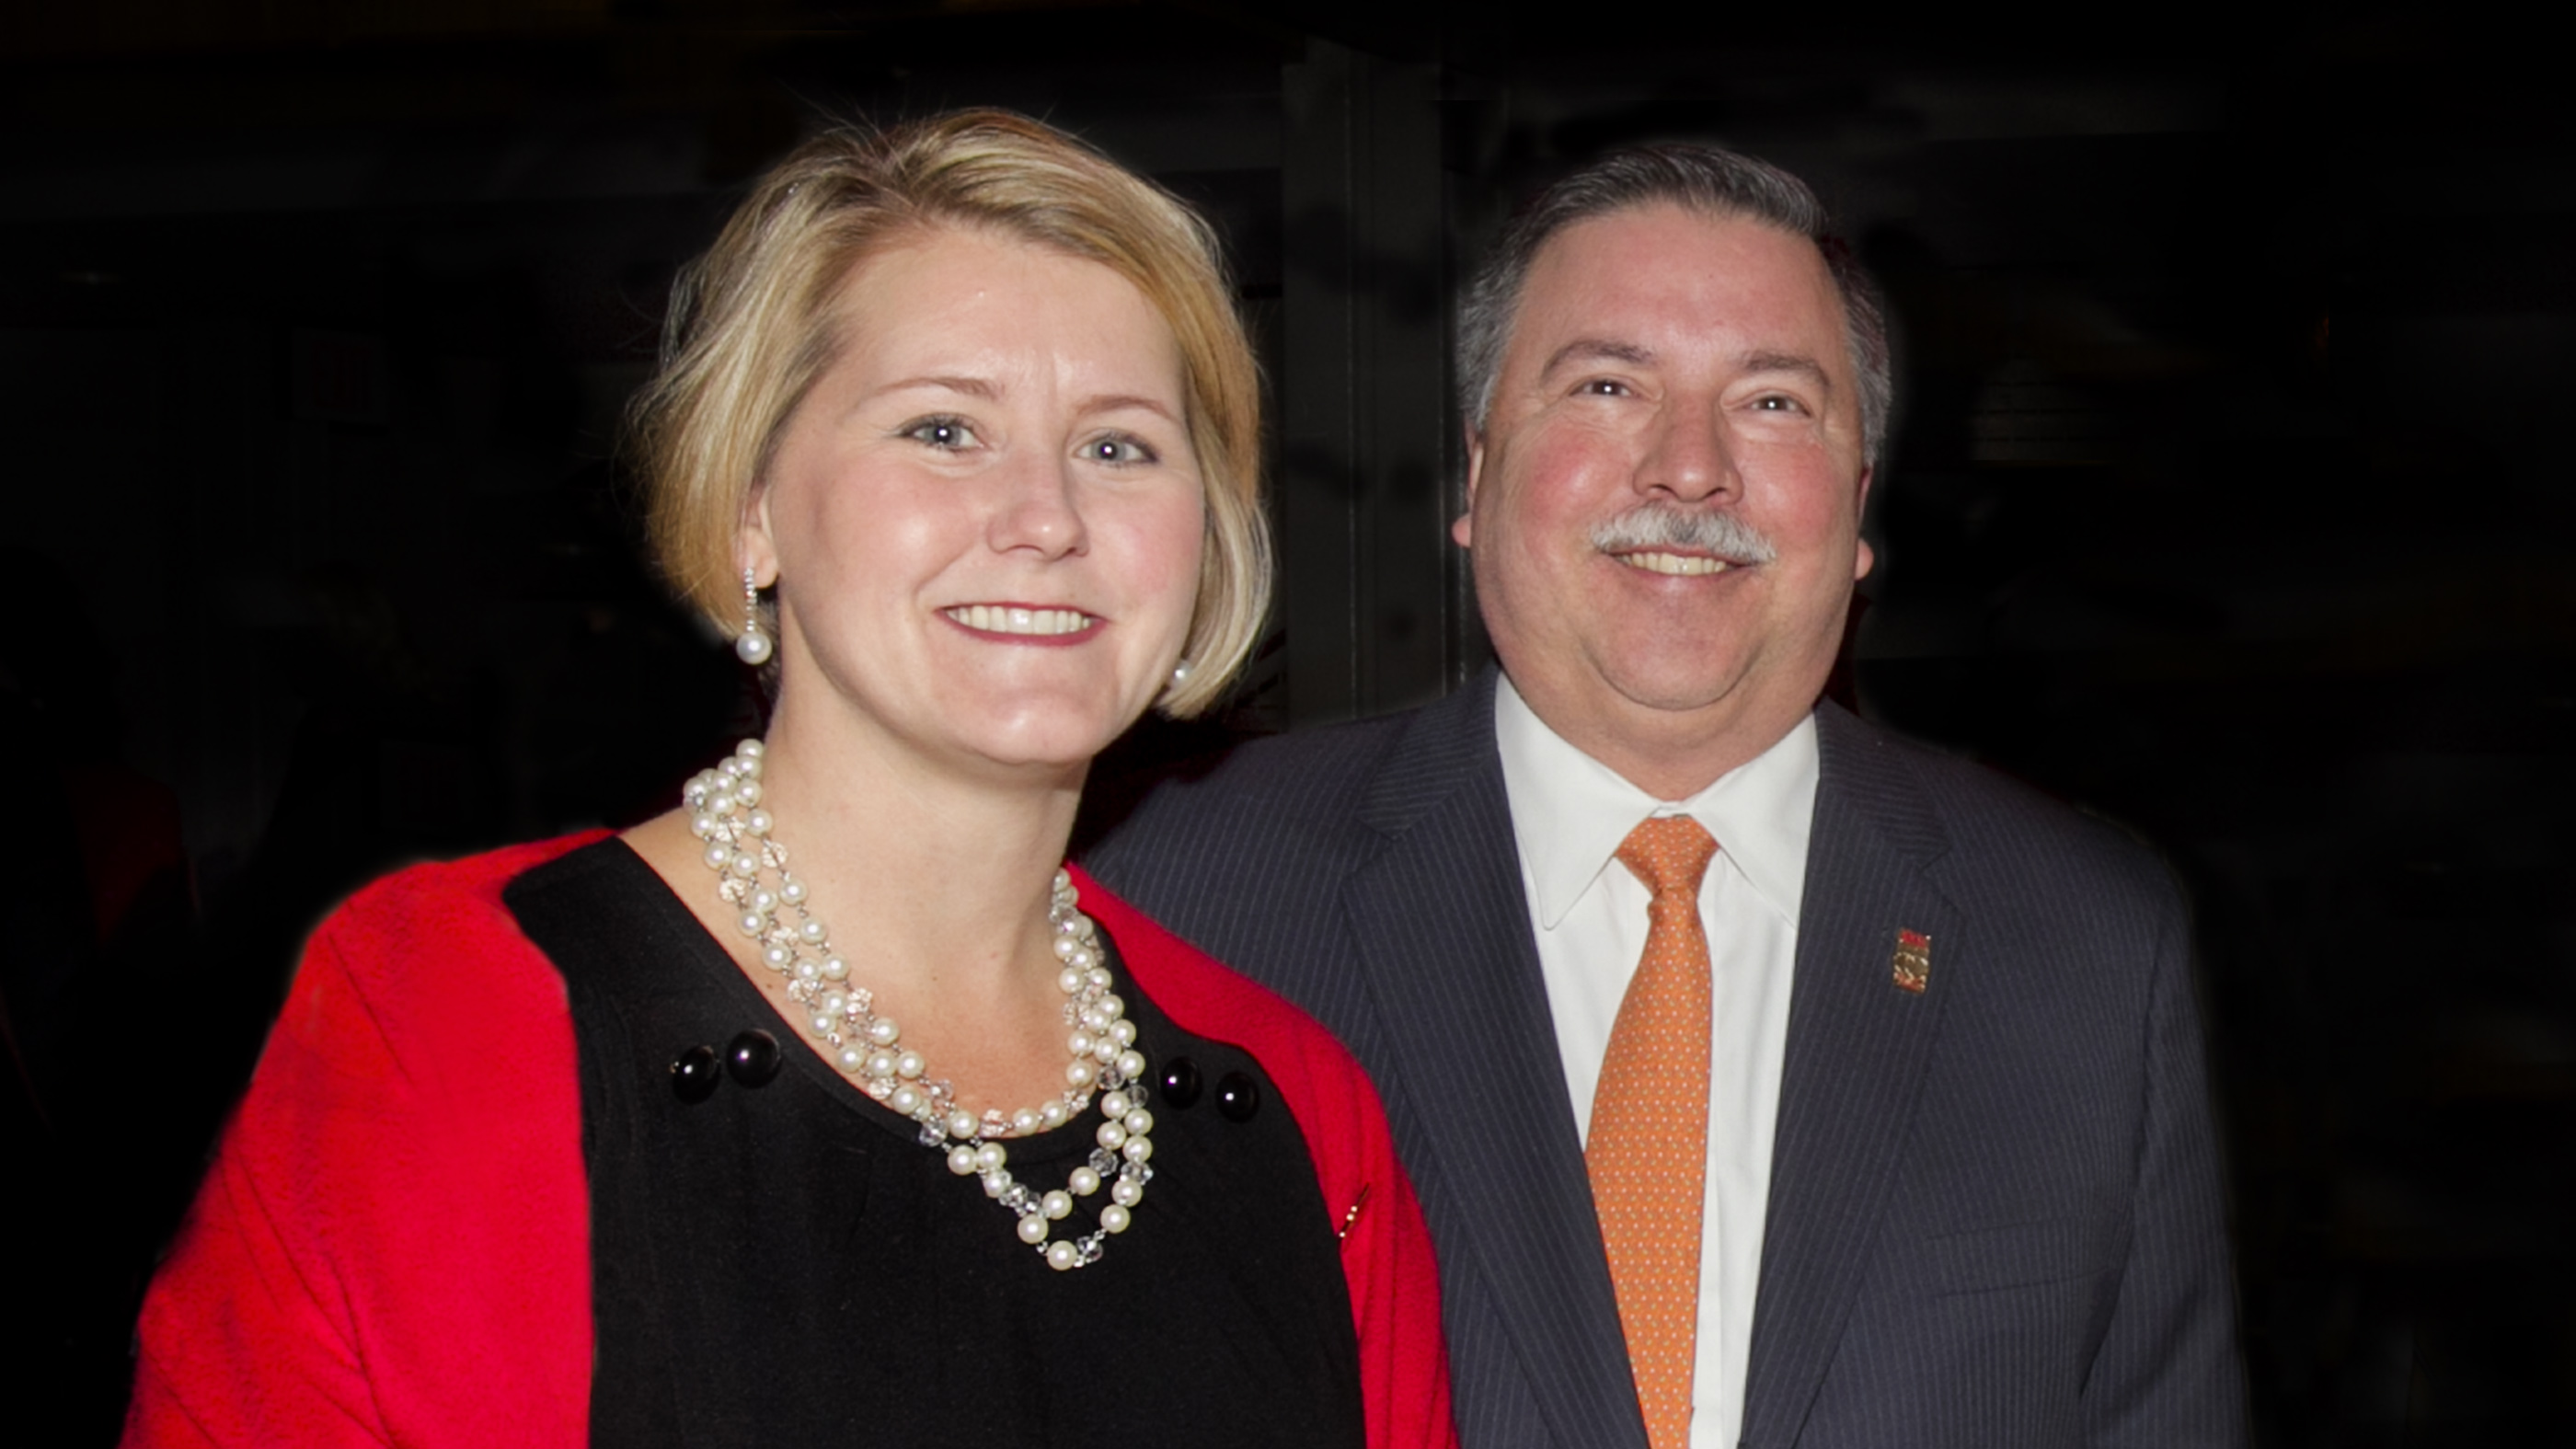 George and Melissa Paz make largest single philanthropic gift in UMSL's history